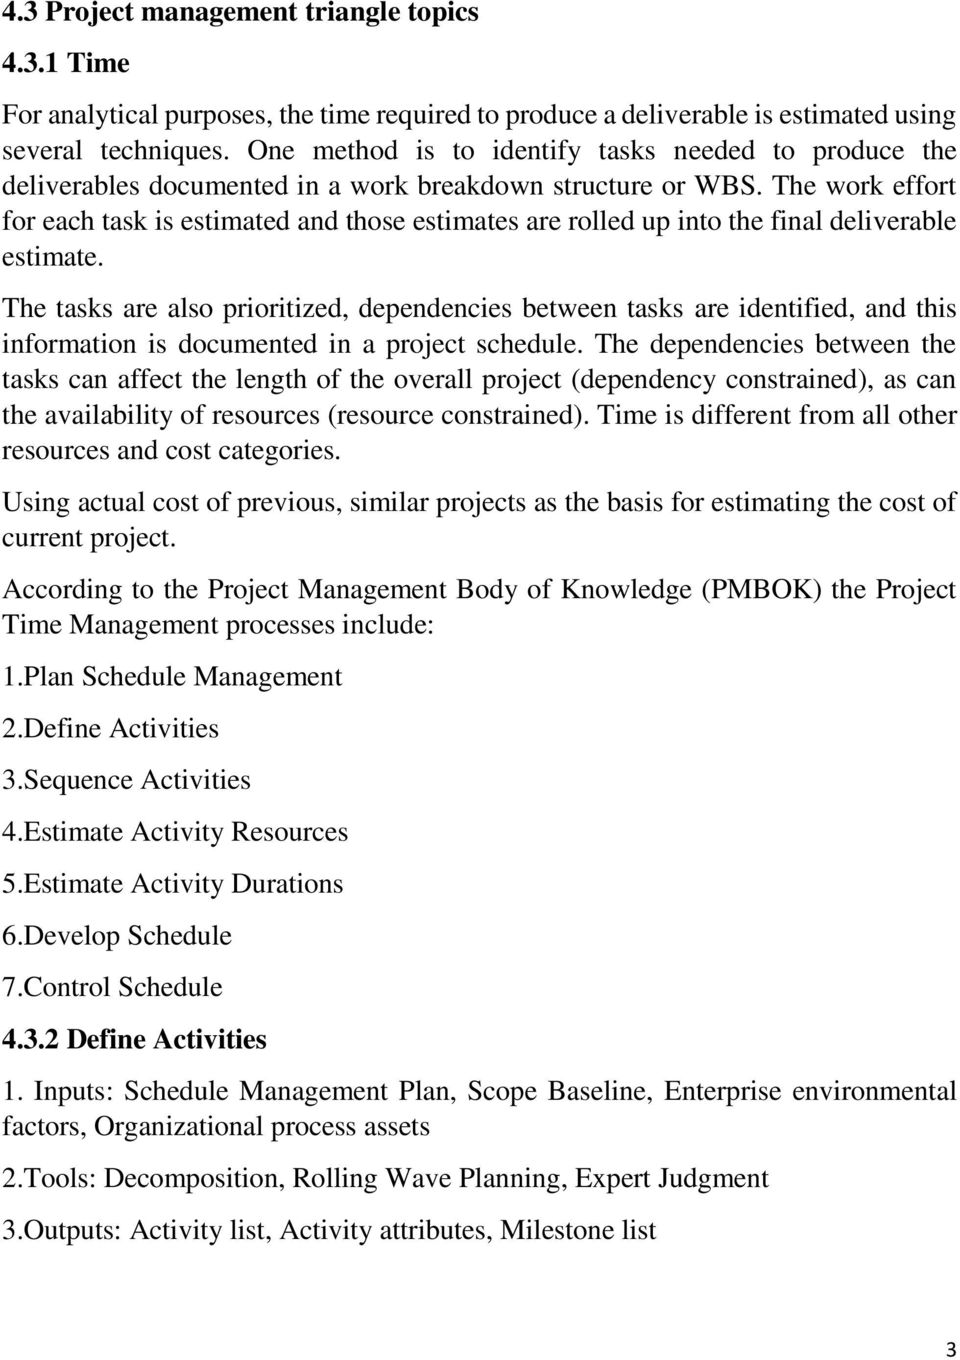 list of project management topics